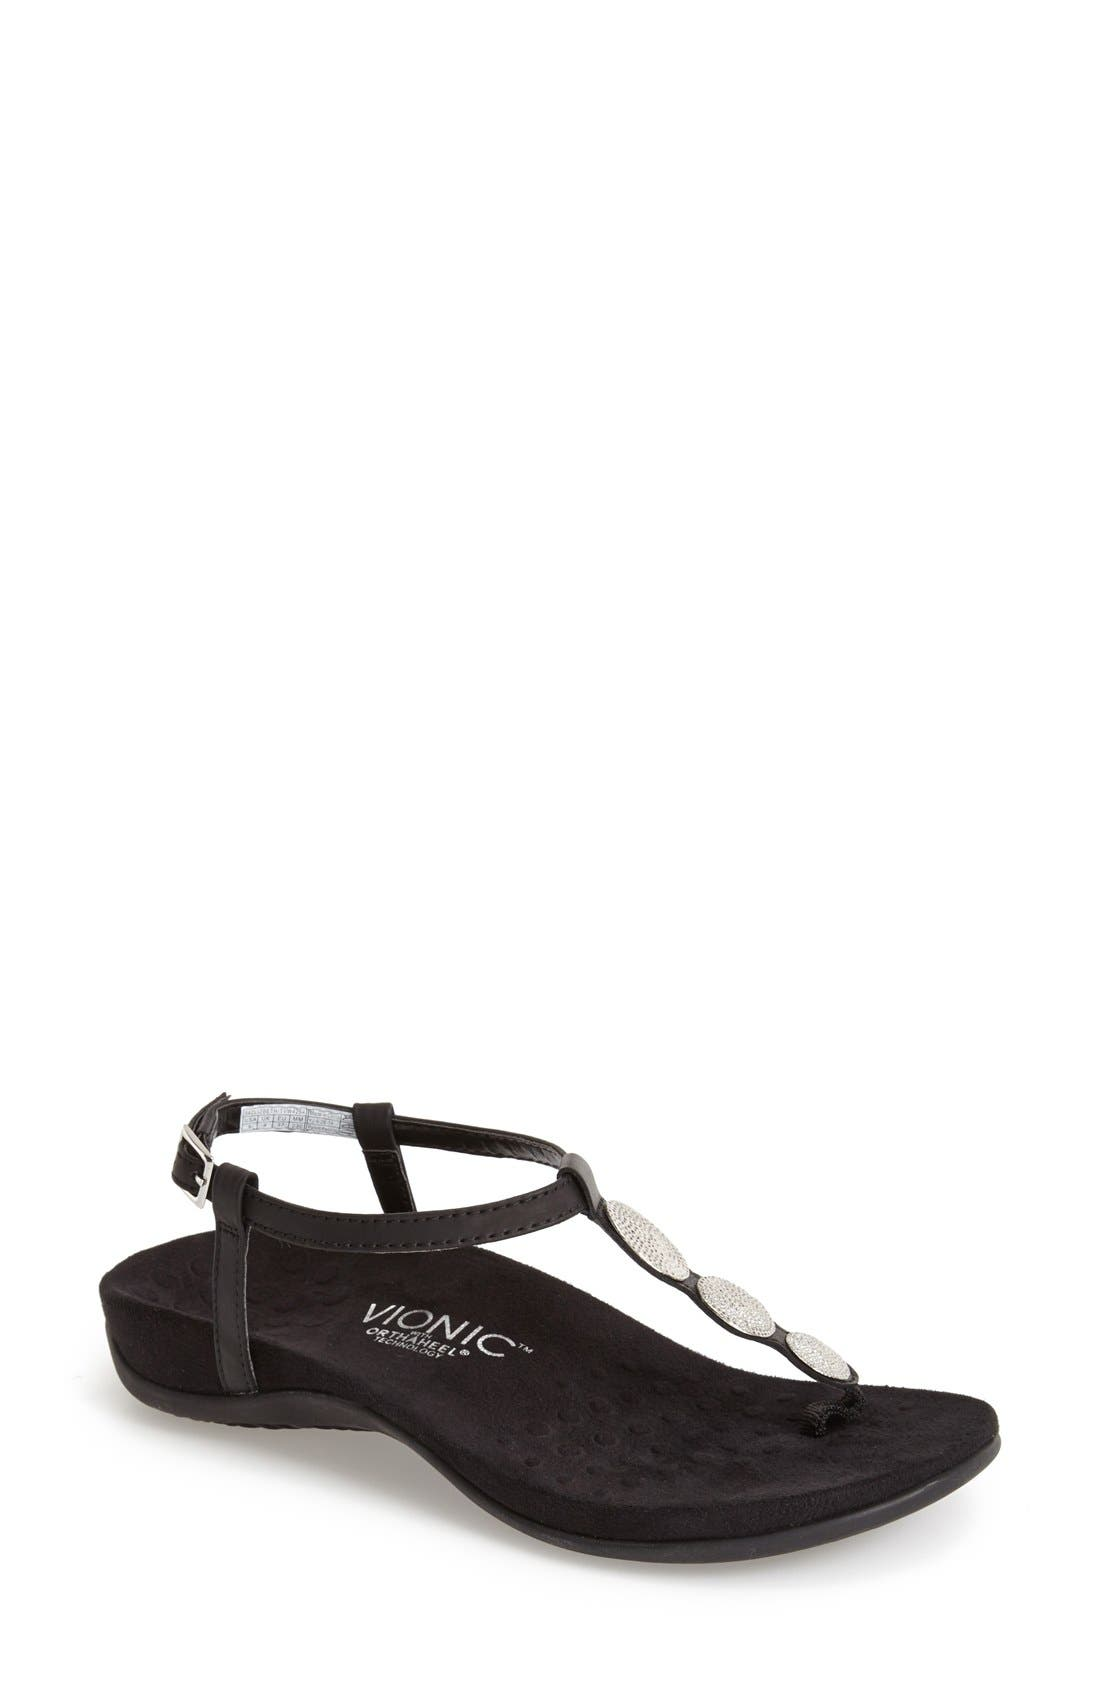 Alternate Image 1 Selected - Vionic 'Lizbeth' Thong Sandal (Women)